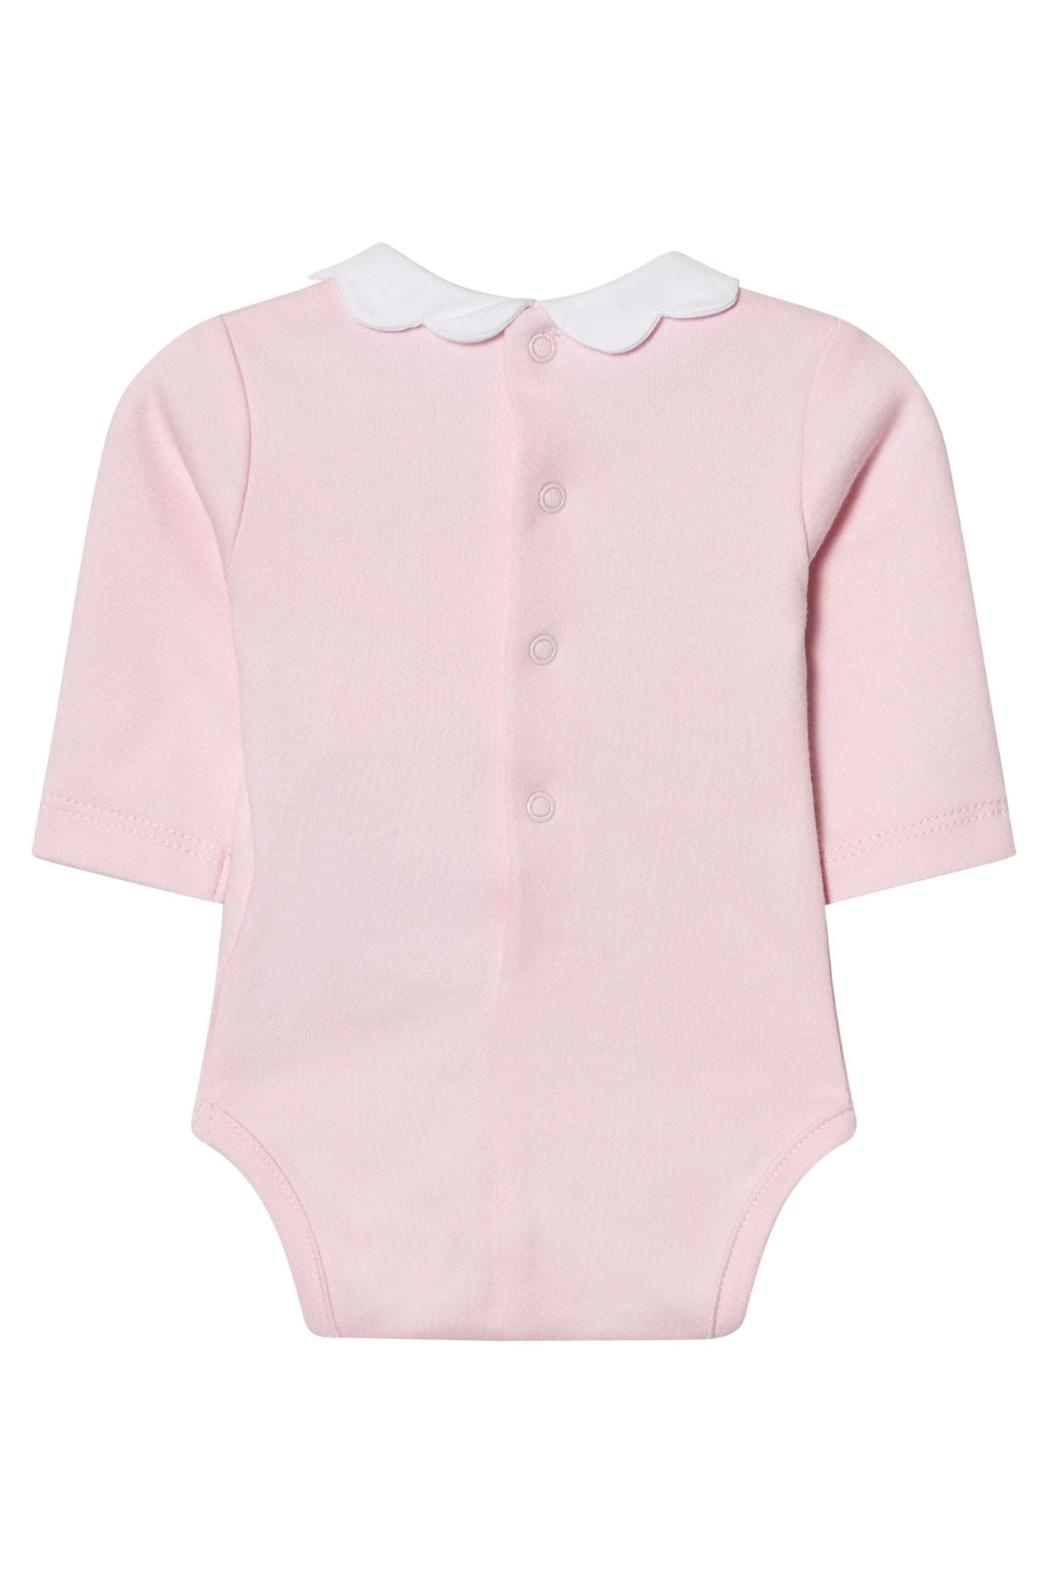 Mayoral Pink Scallop Collar Onesie - Front Full Image